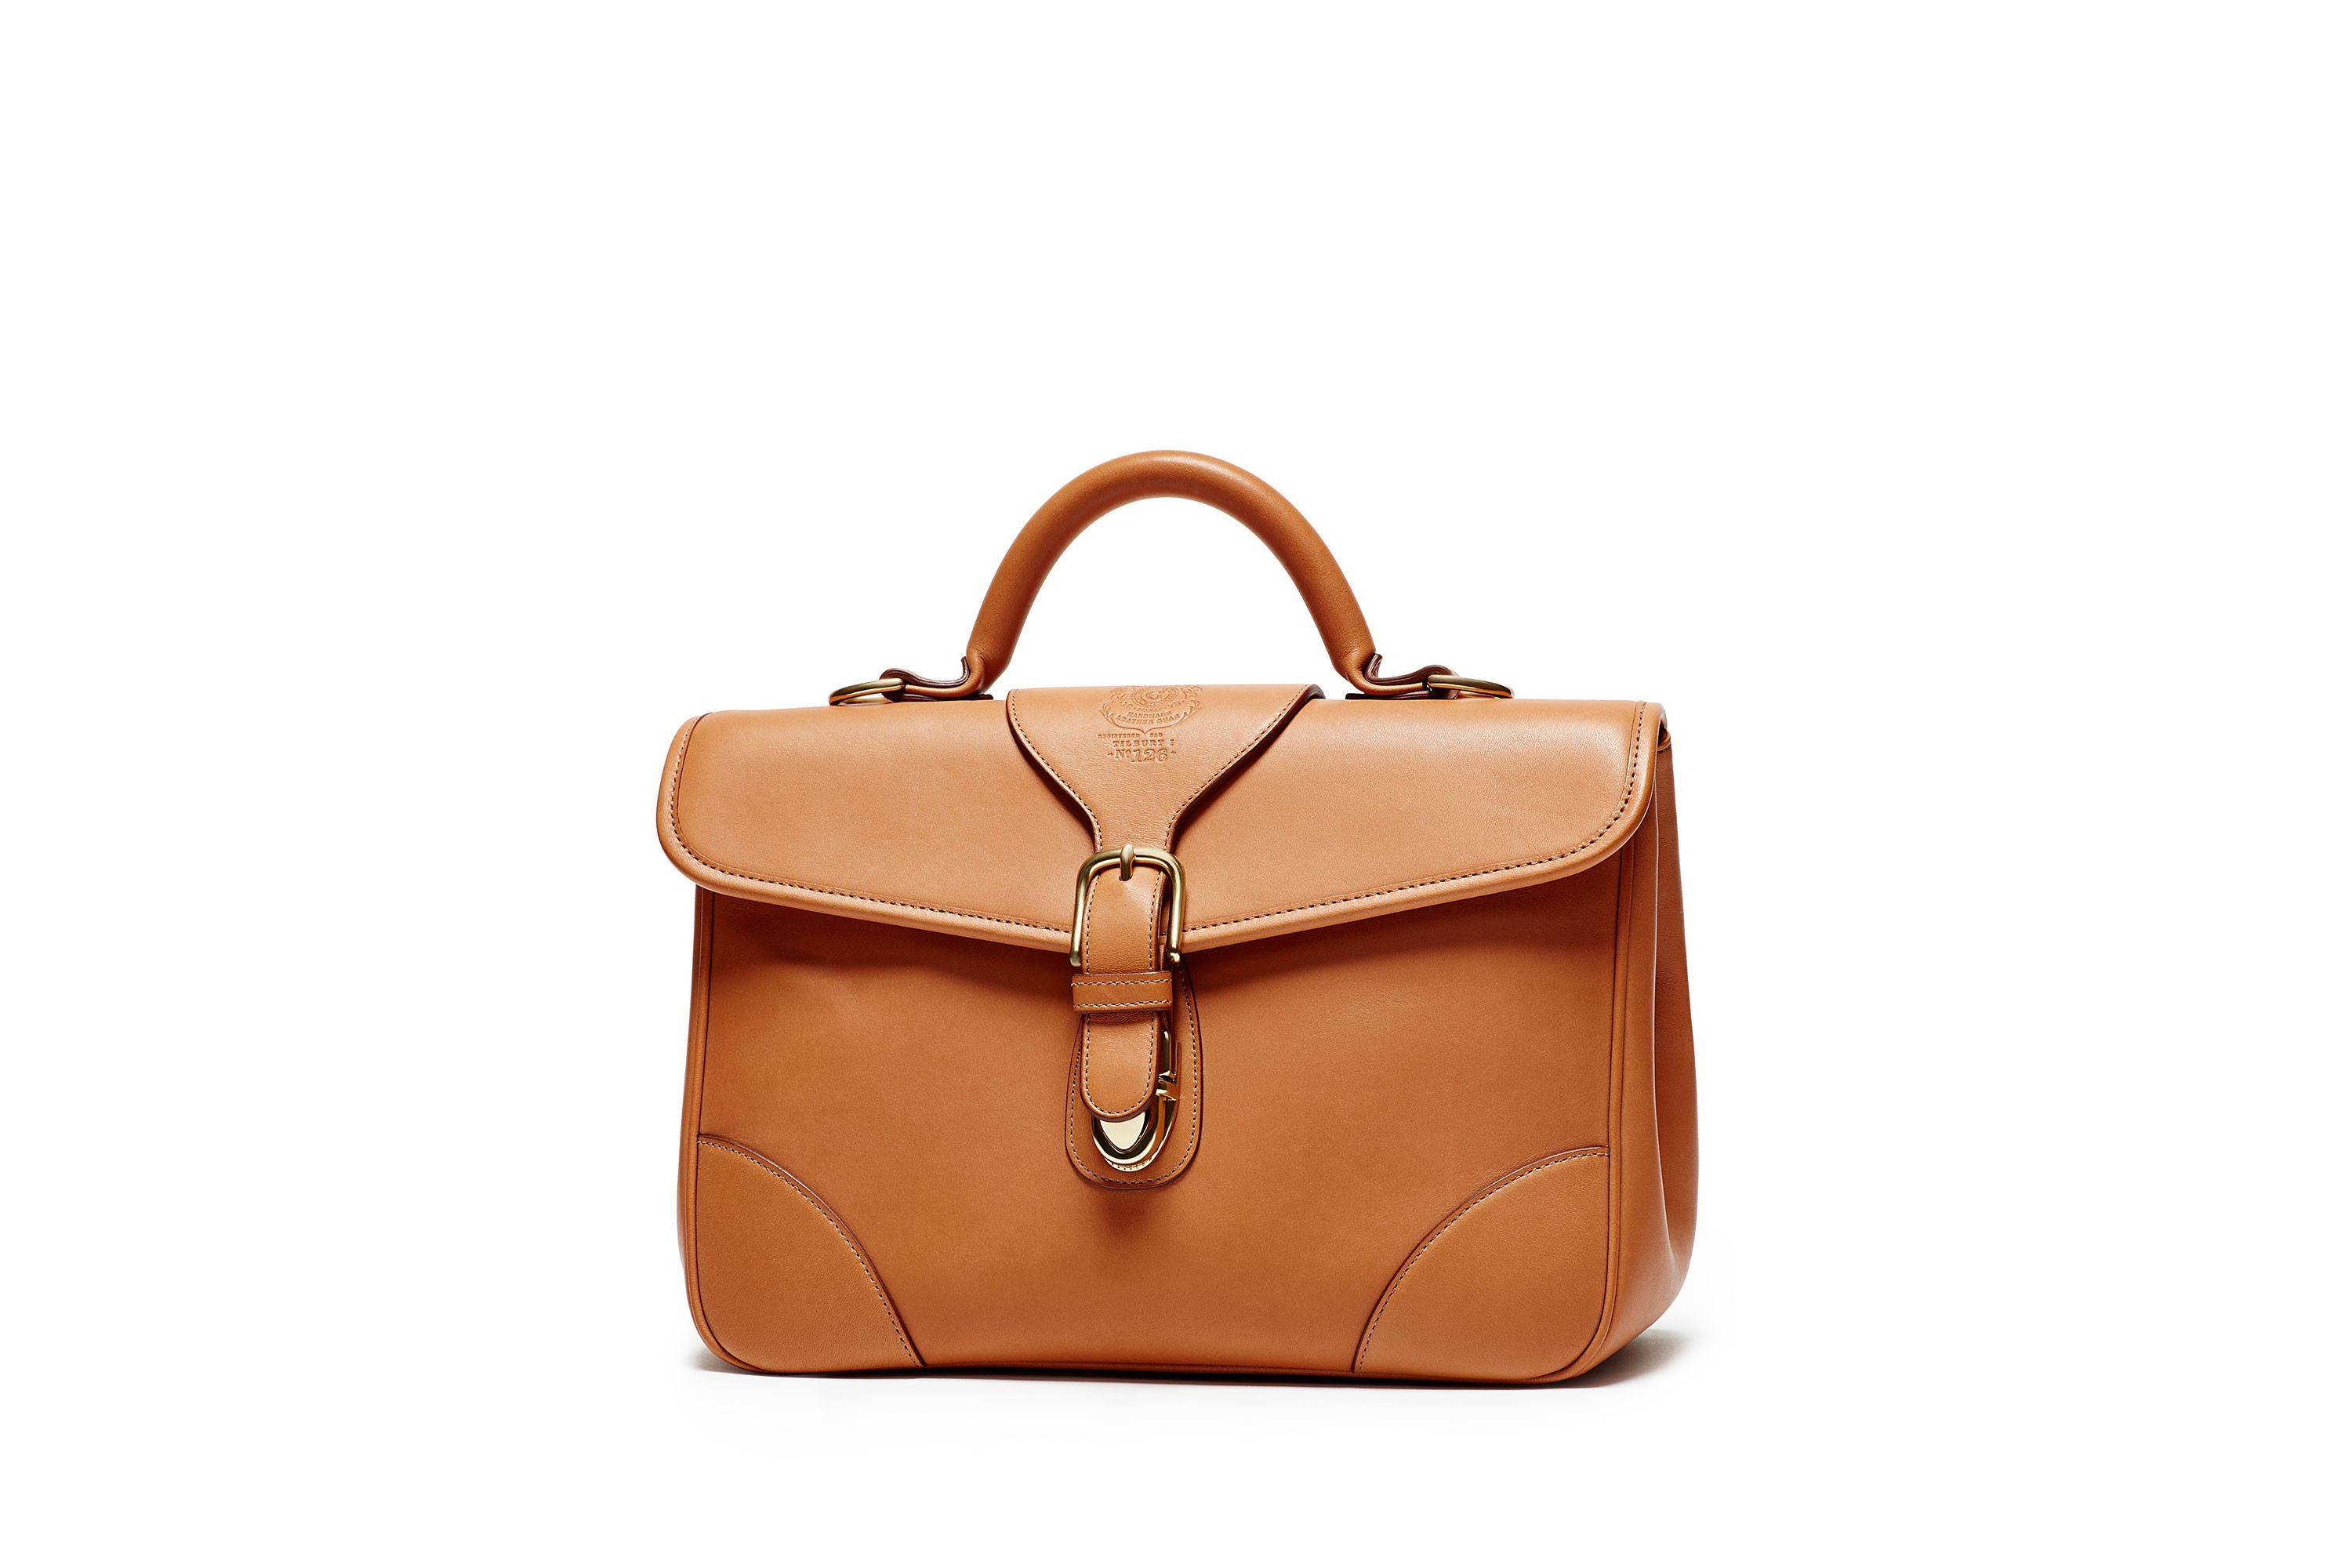 Leather Handbag | Tilbury No. 126 in Chestnut | Ghurka